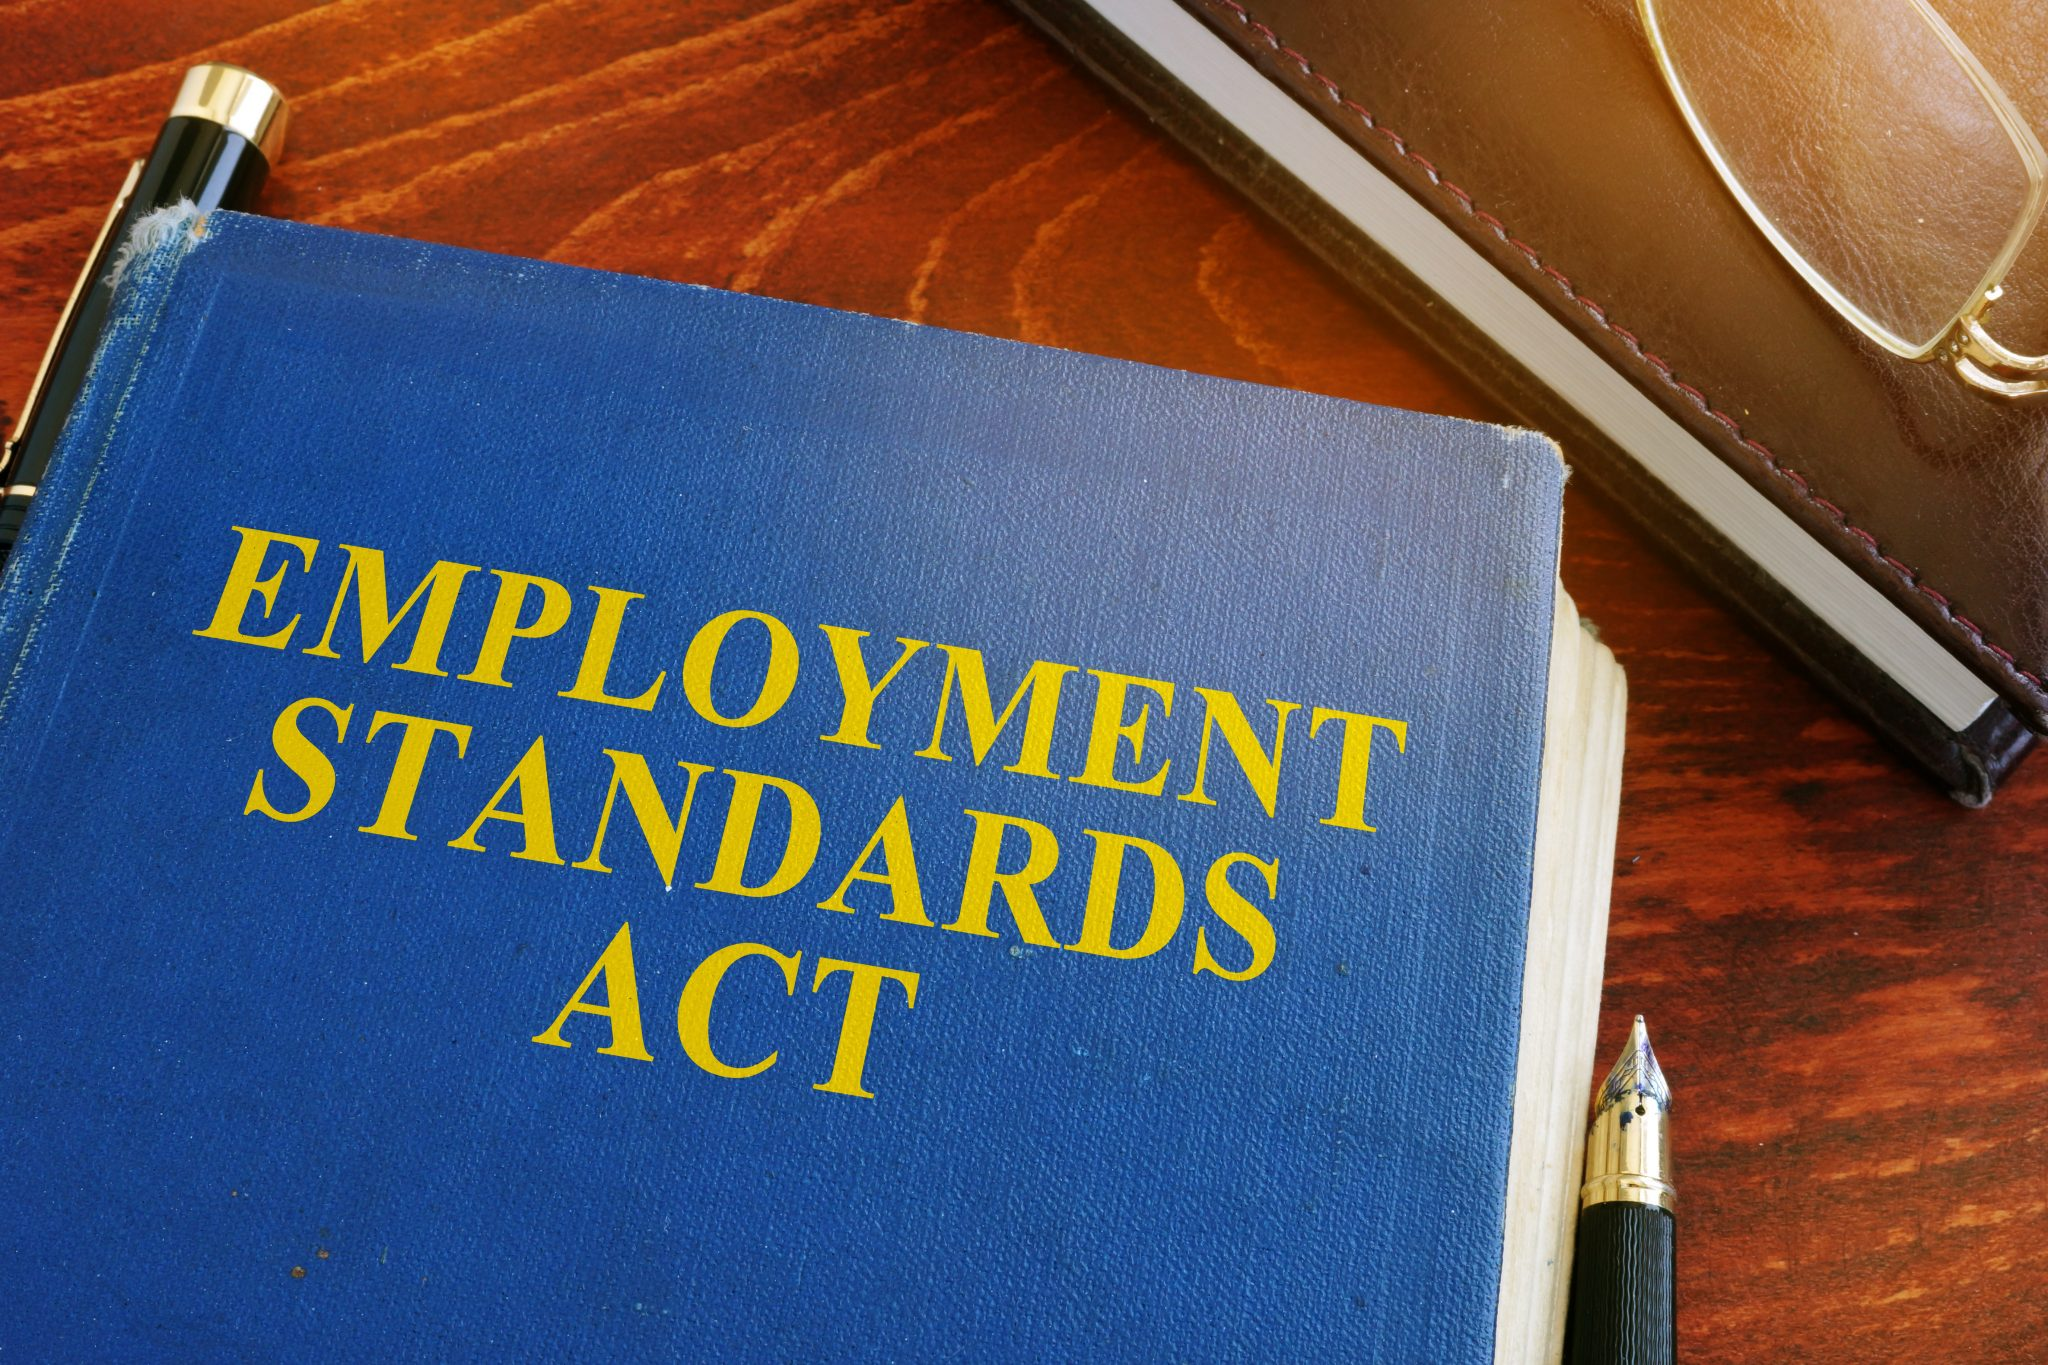 Get Redundancy Advice For Employees From Expert Solicitors